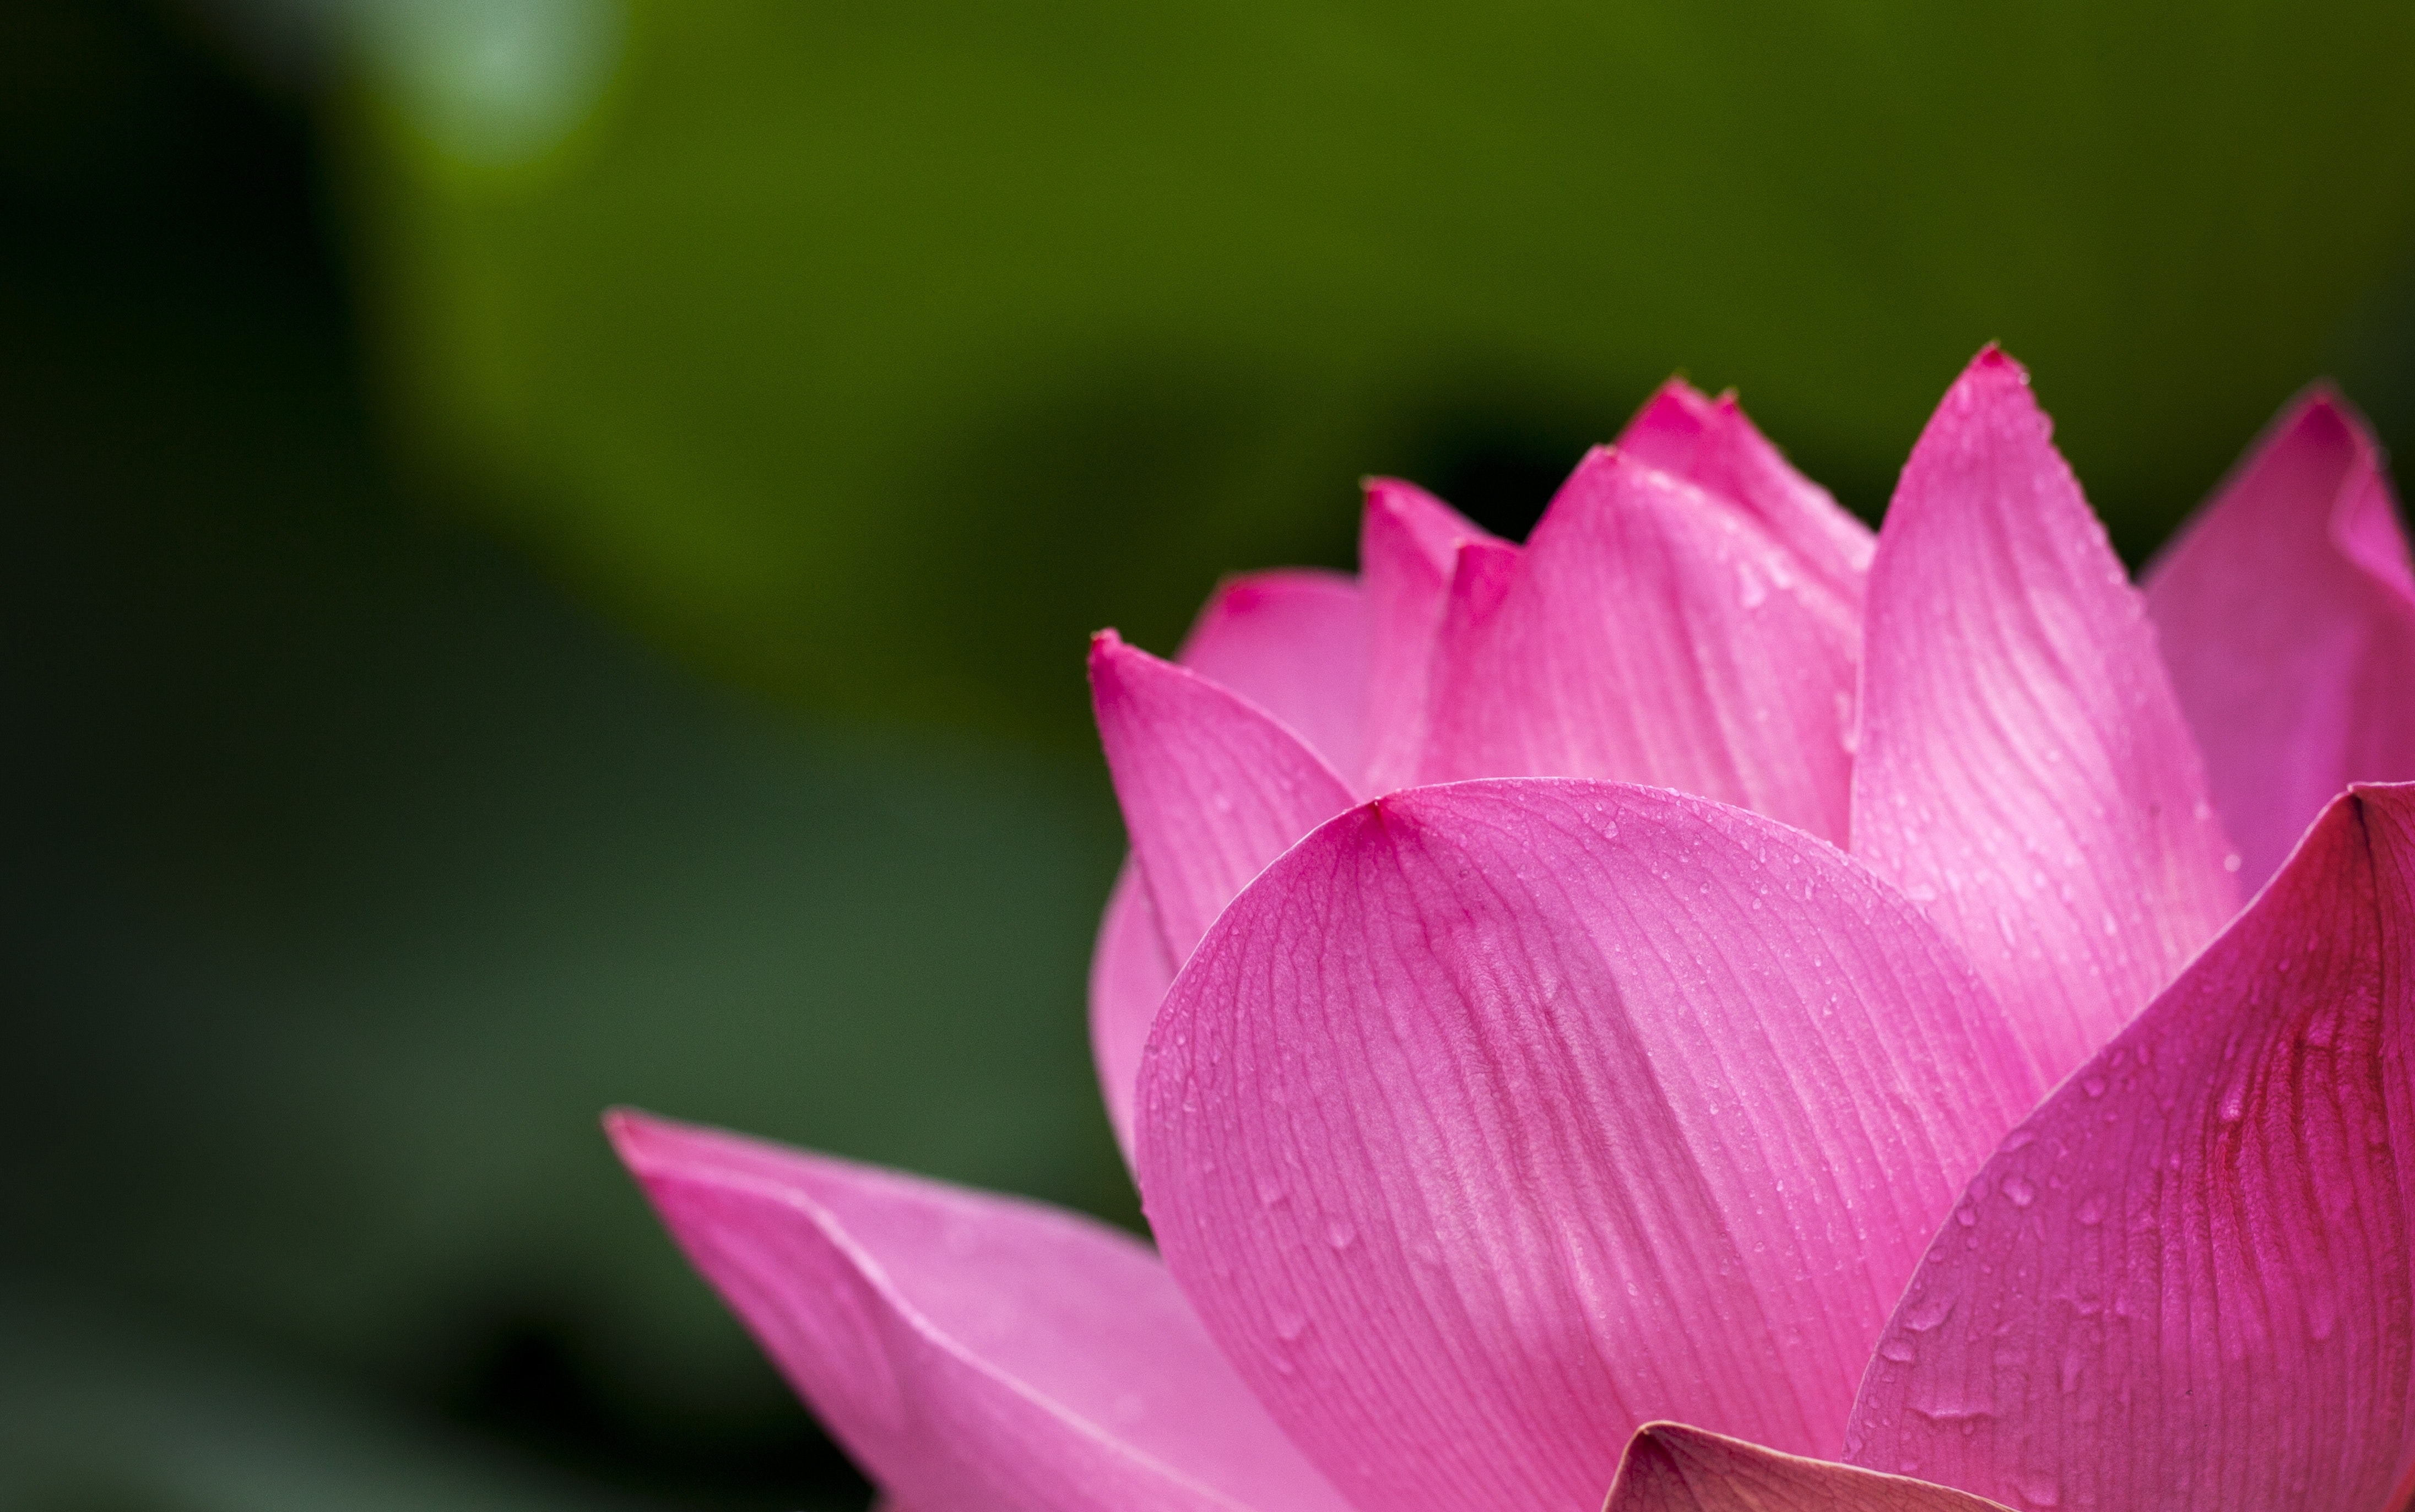 Free photo lotus flower blooming during daytime lotus macro lotus flower blooming during daytime izmirmasajfo